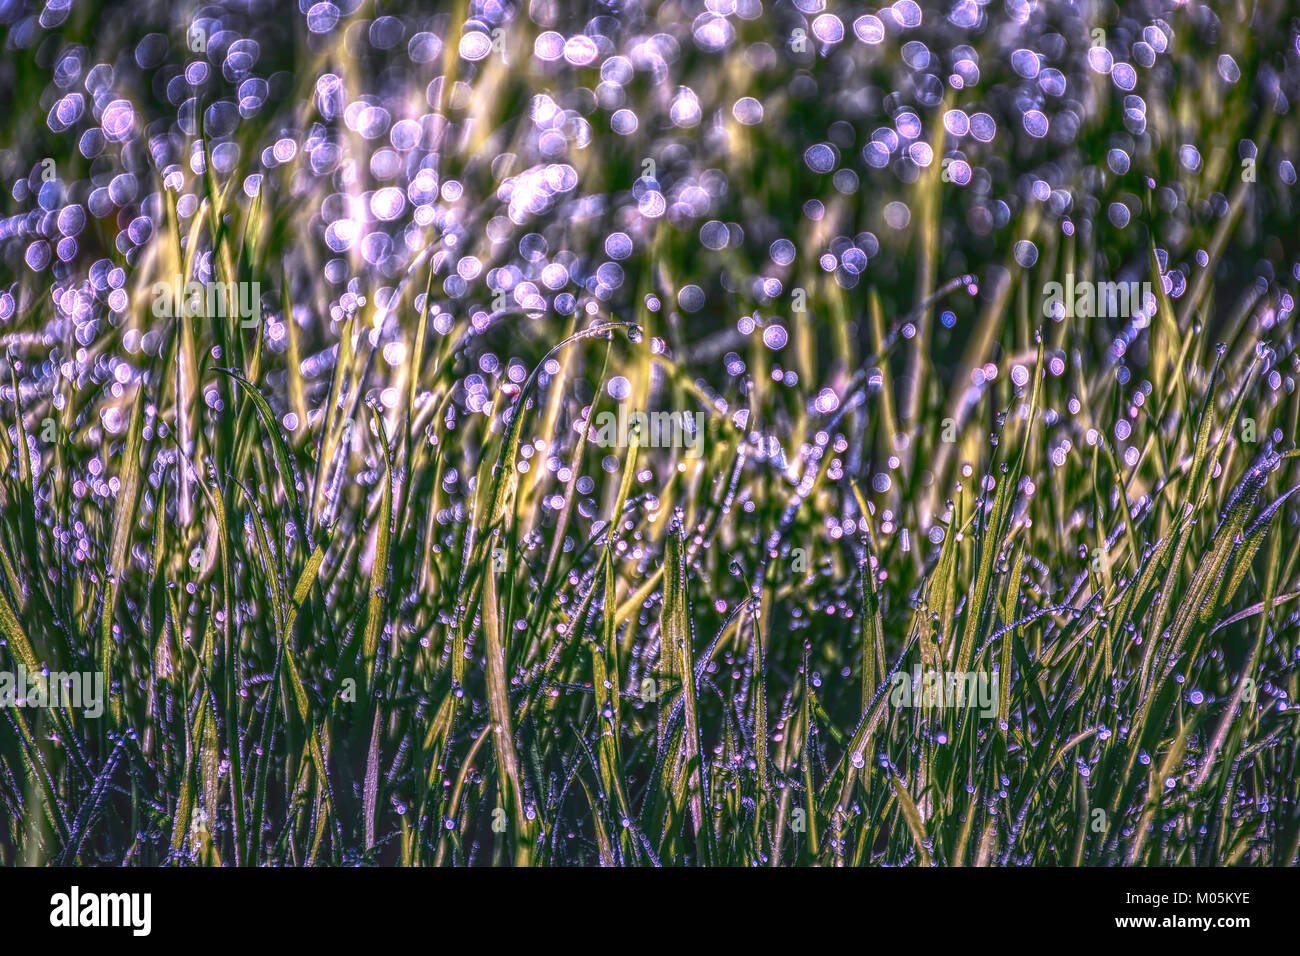 Morning dew on grass ,natural light and beautiful violet bokeh.Nature abstract. - Stock Image